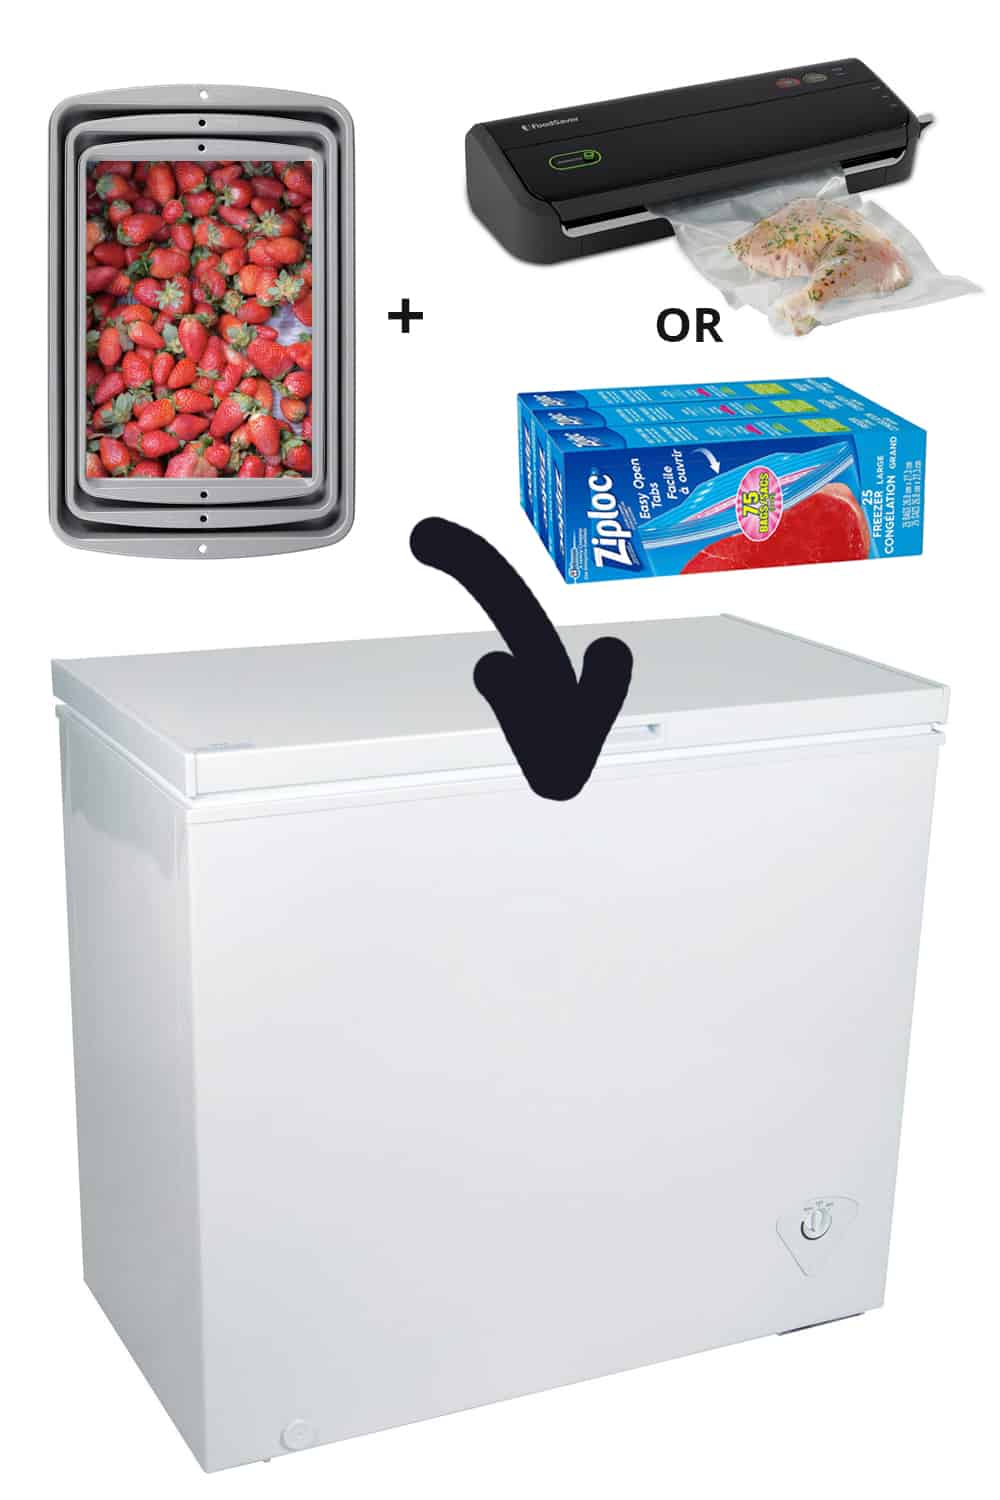 supplies for freezing fruits and veggies